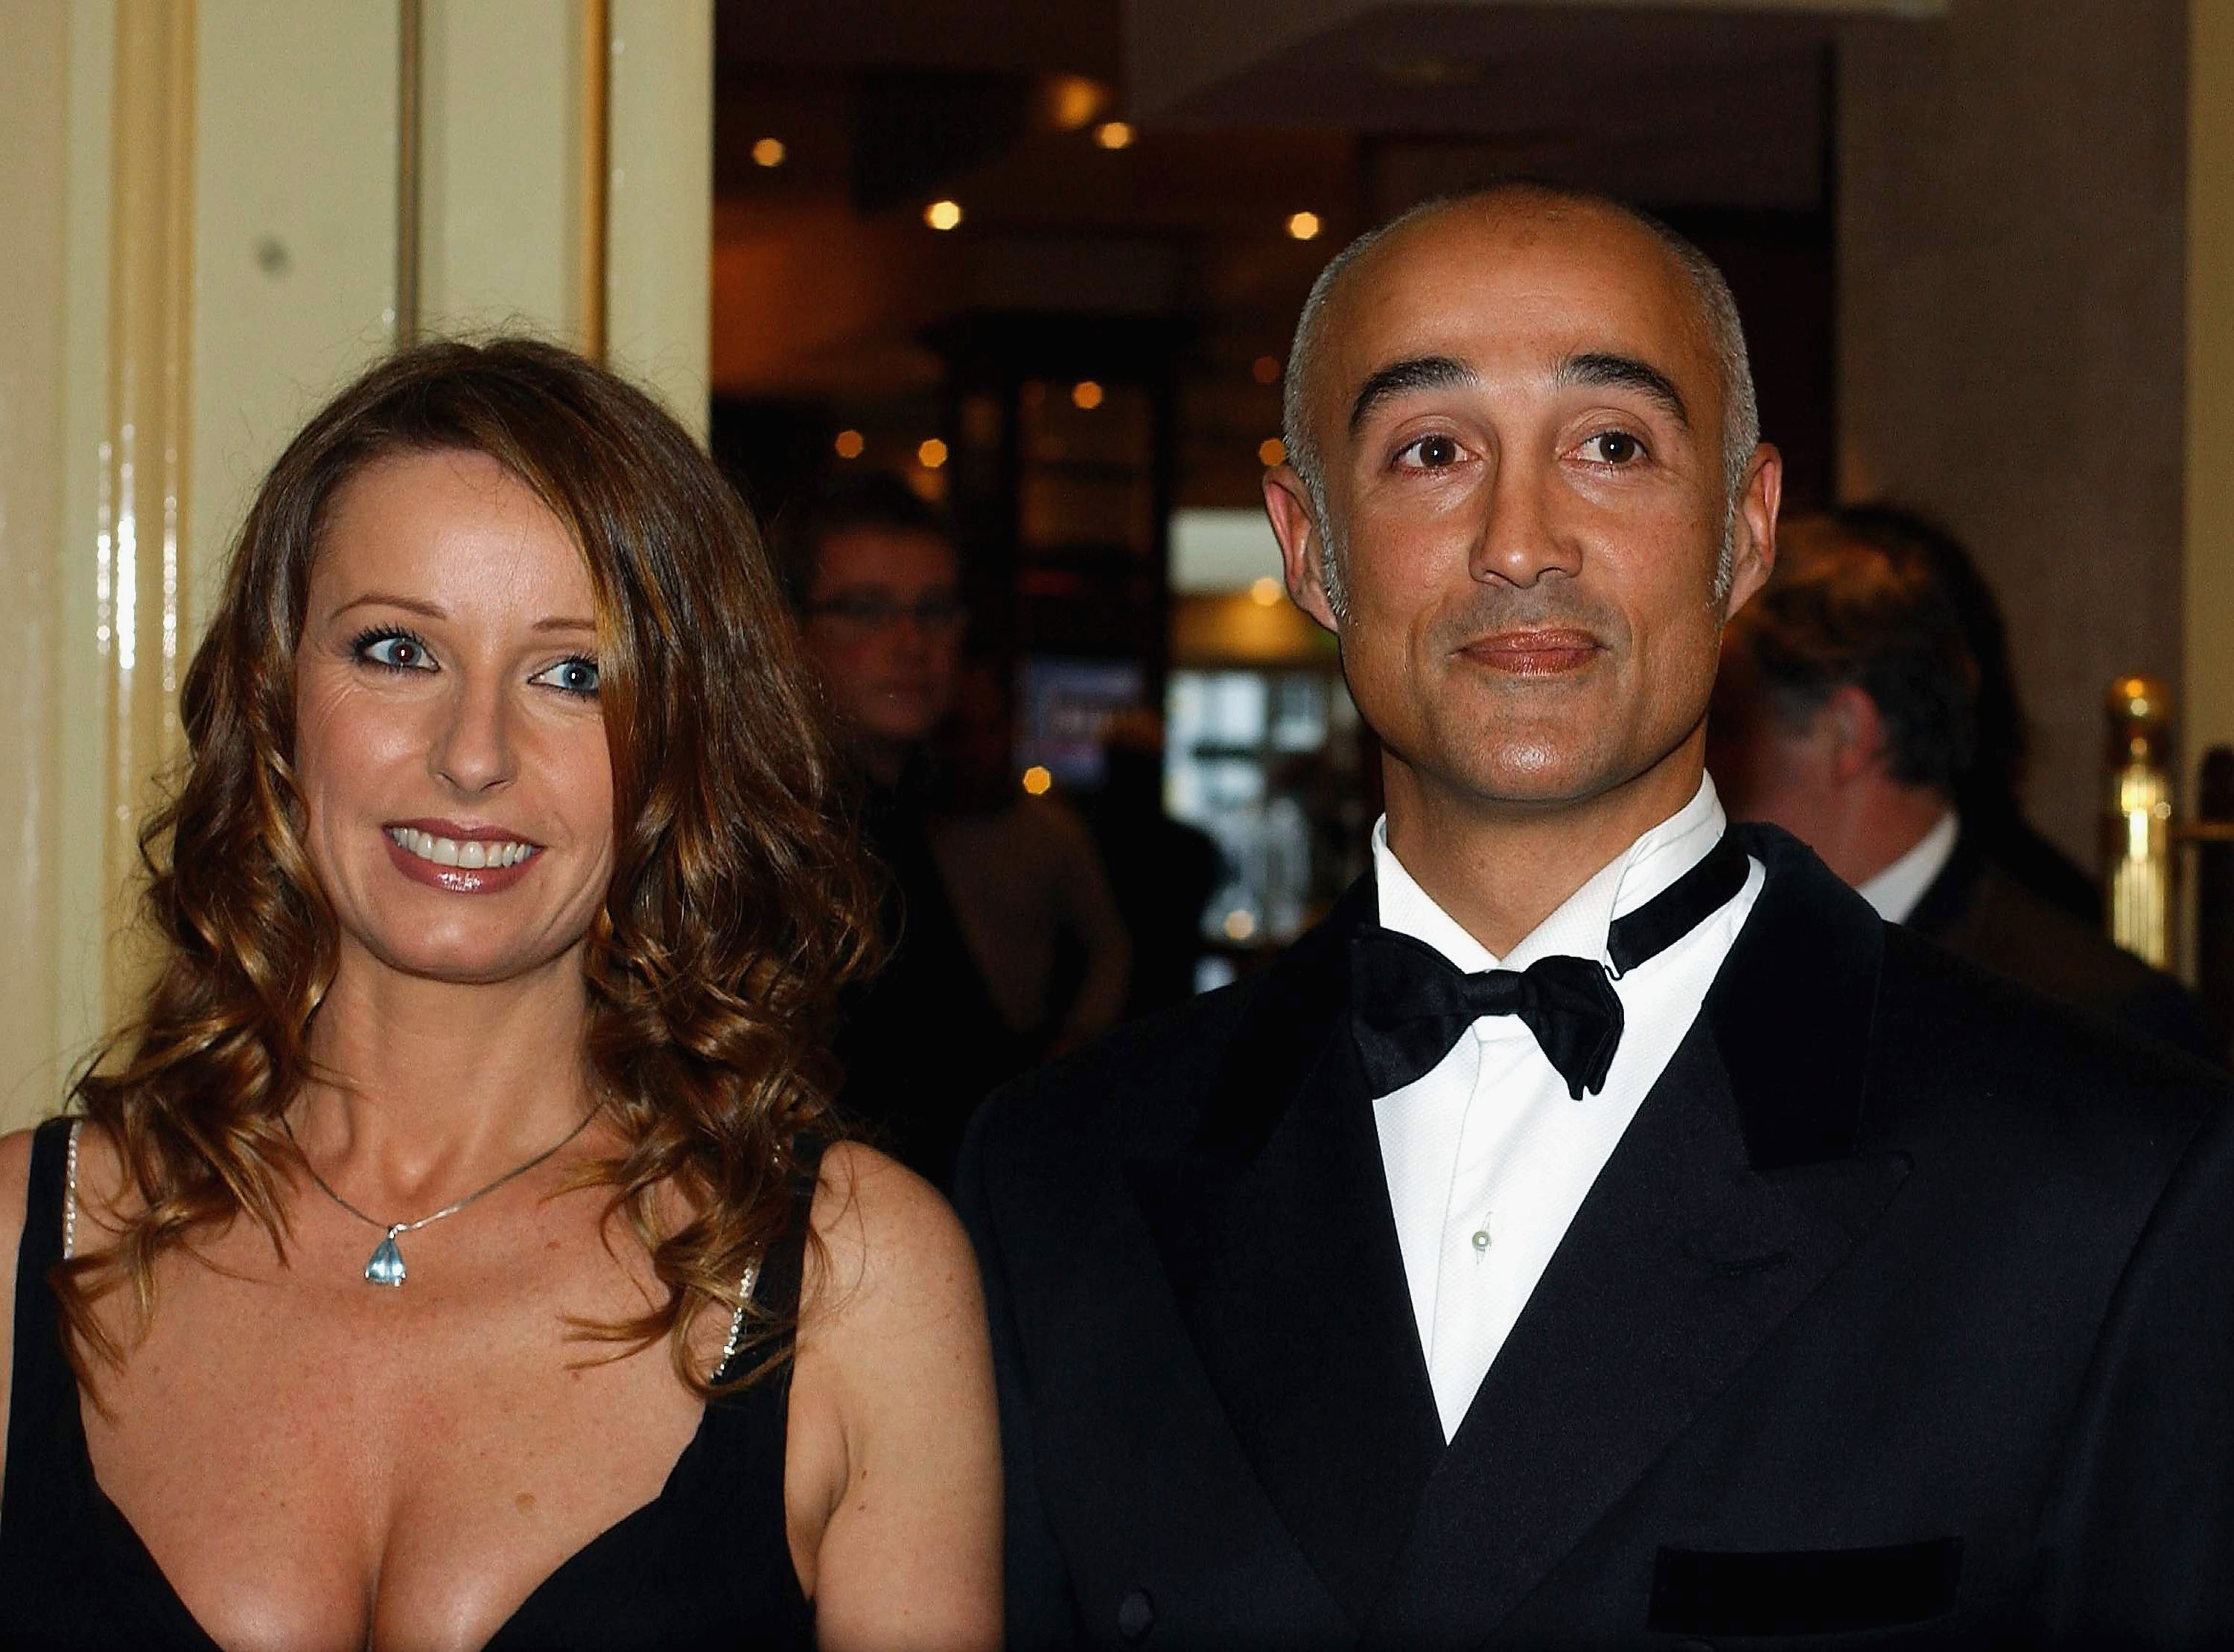 Andrew Ridgeley and Keren Woodward